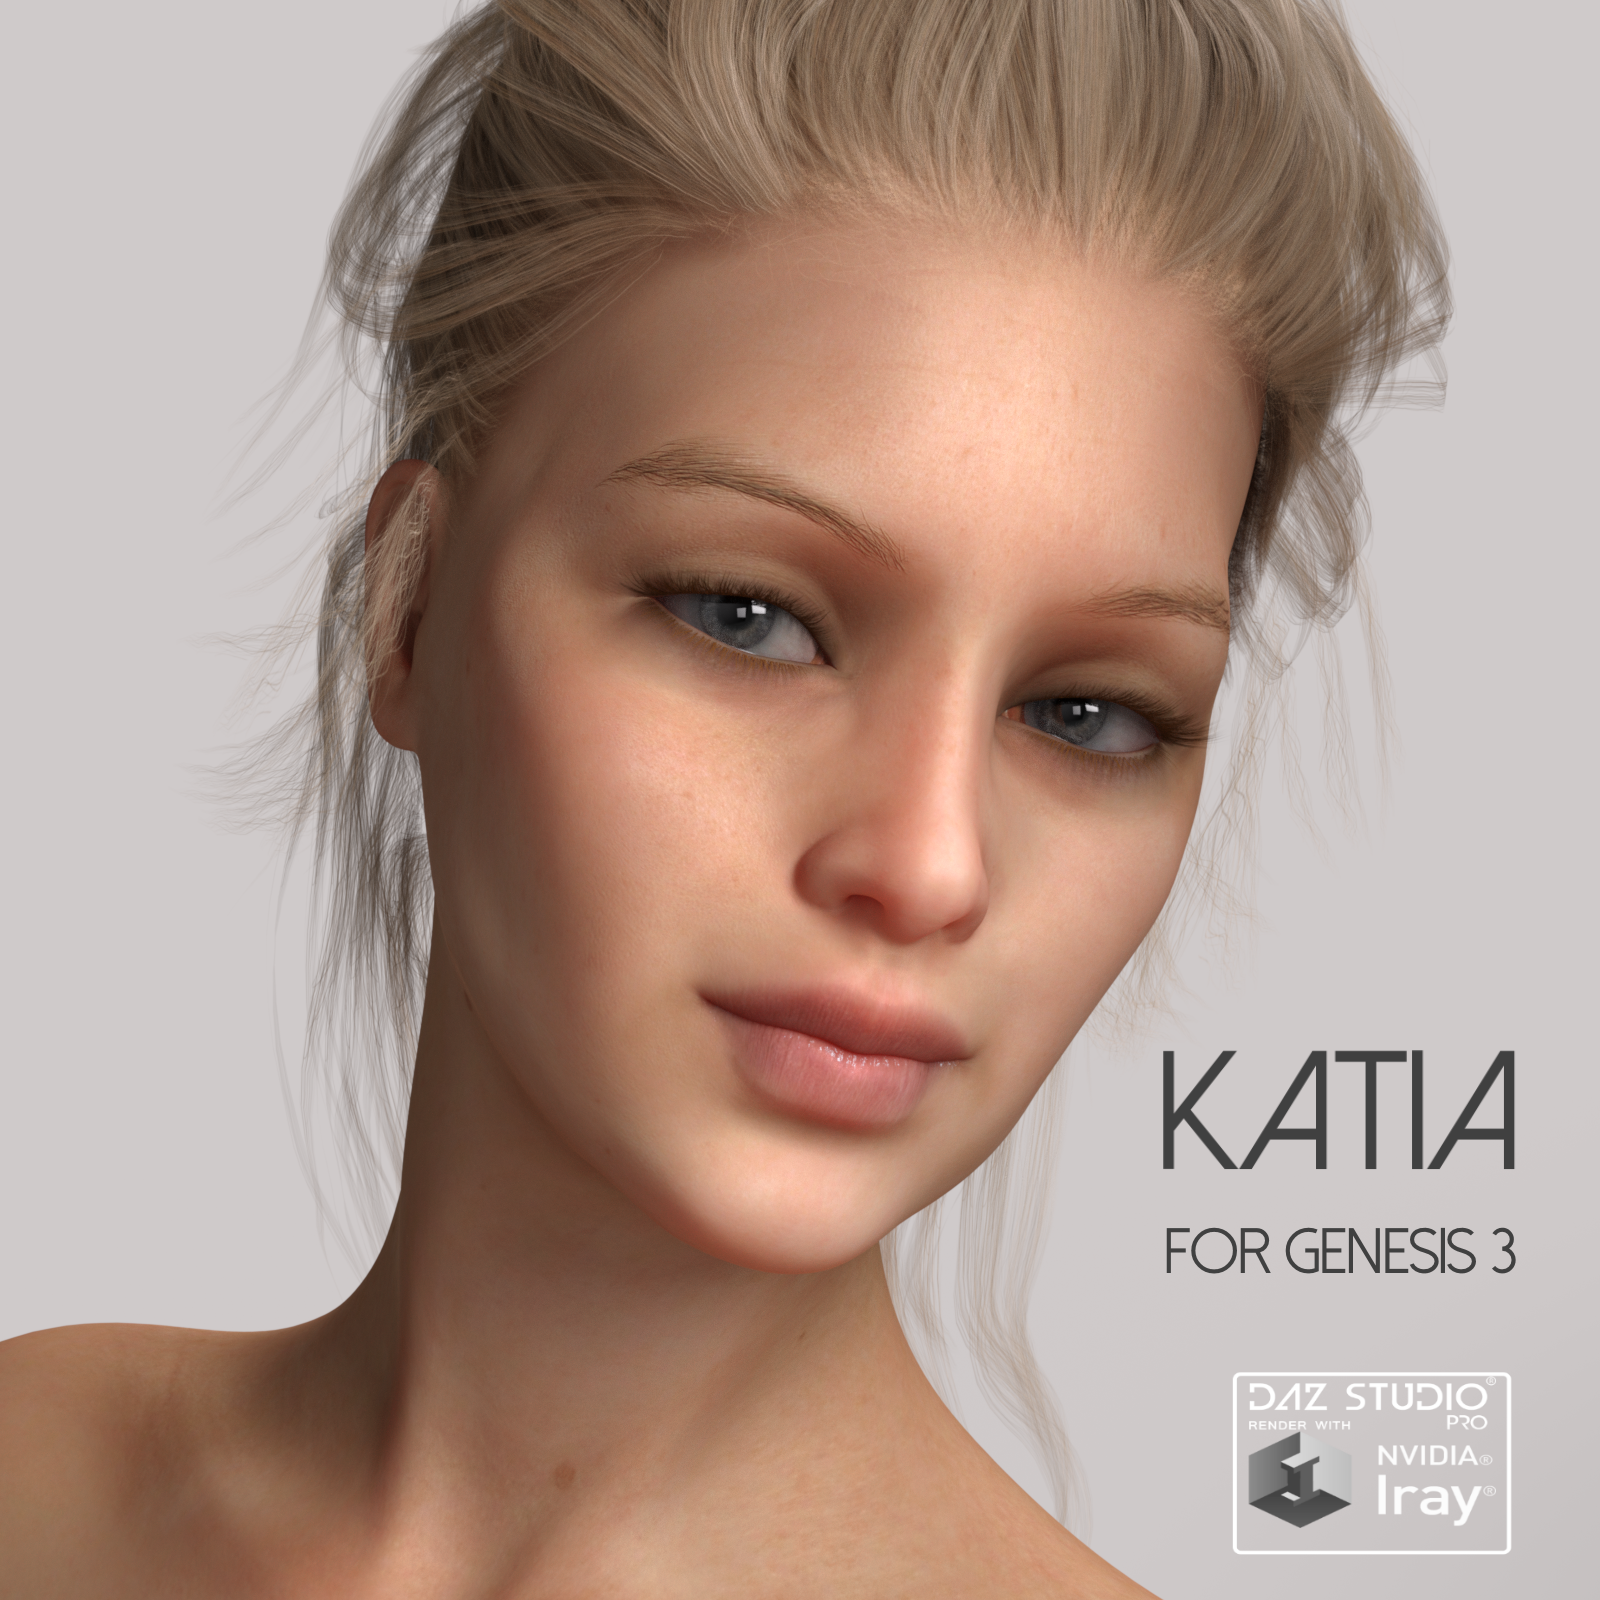 Redz Katia for Genesis 3 Female